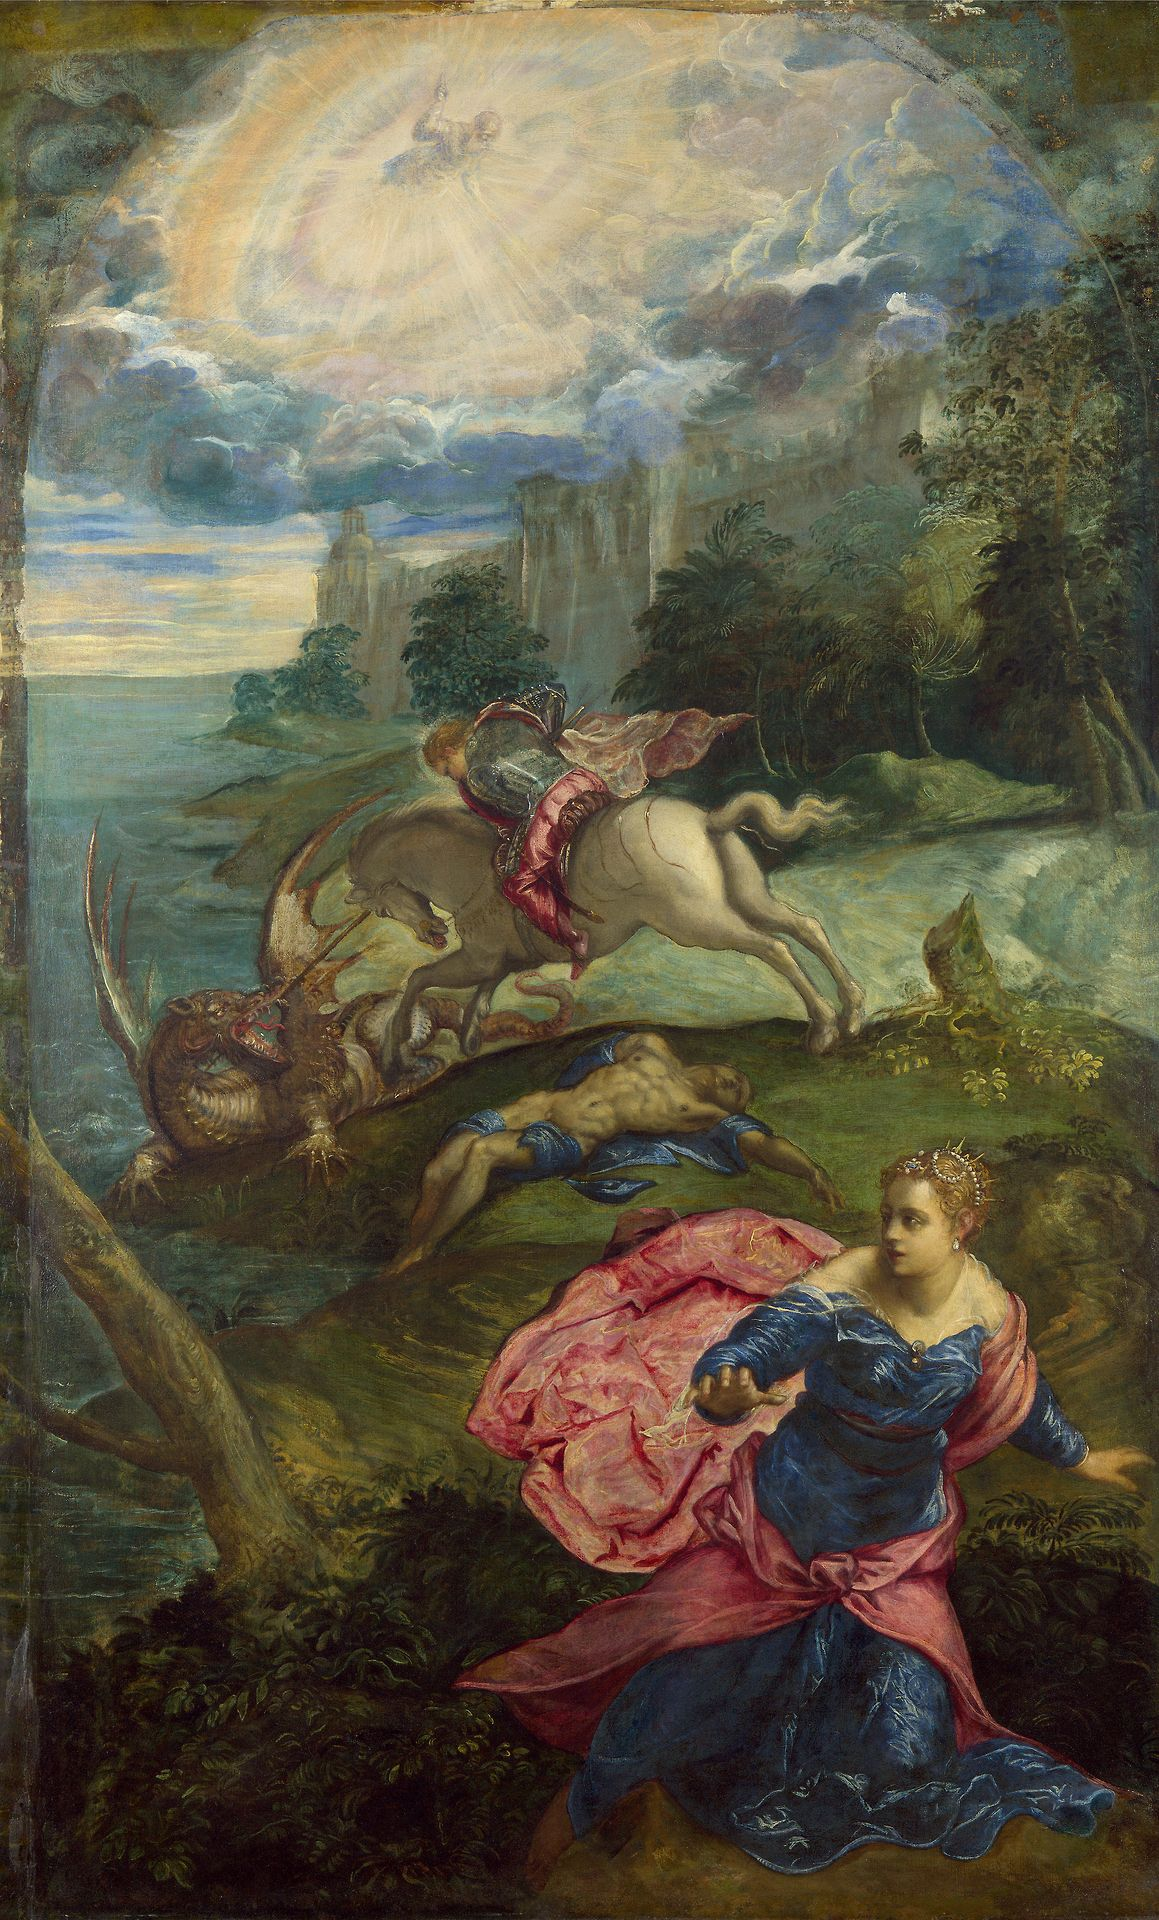 Jacopo Comin (Tintoretto) - Saint George and the Dragon; National Gallery, London, England; c.1555